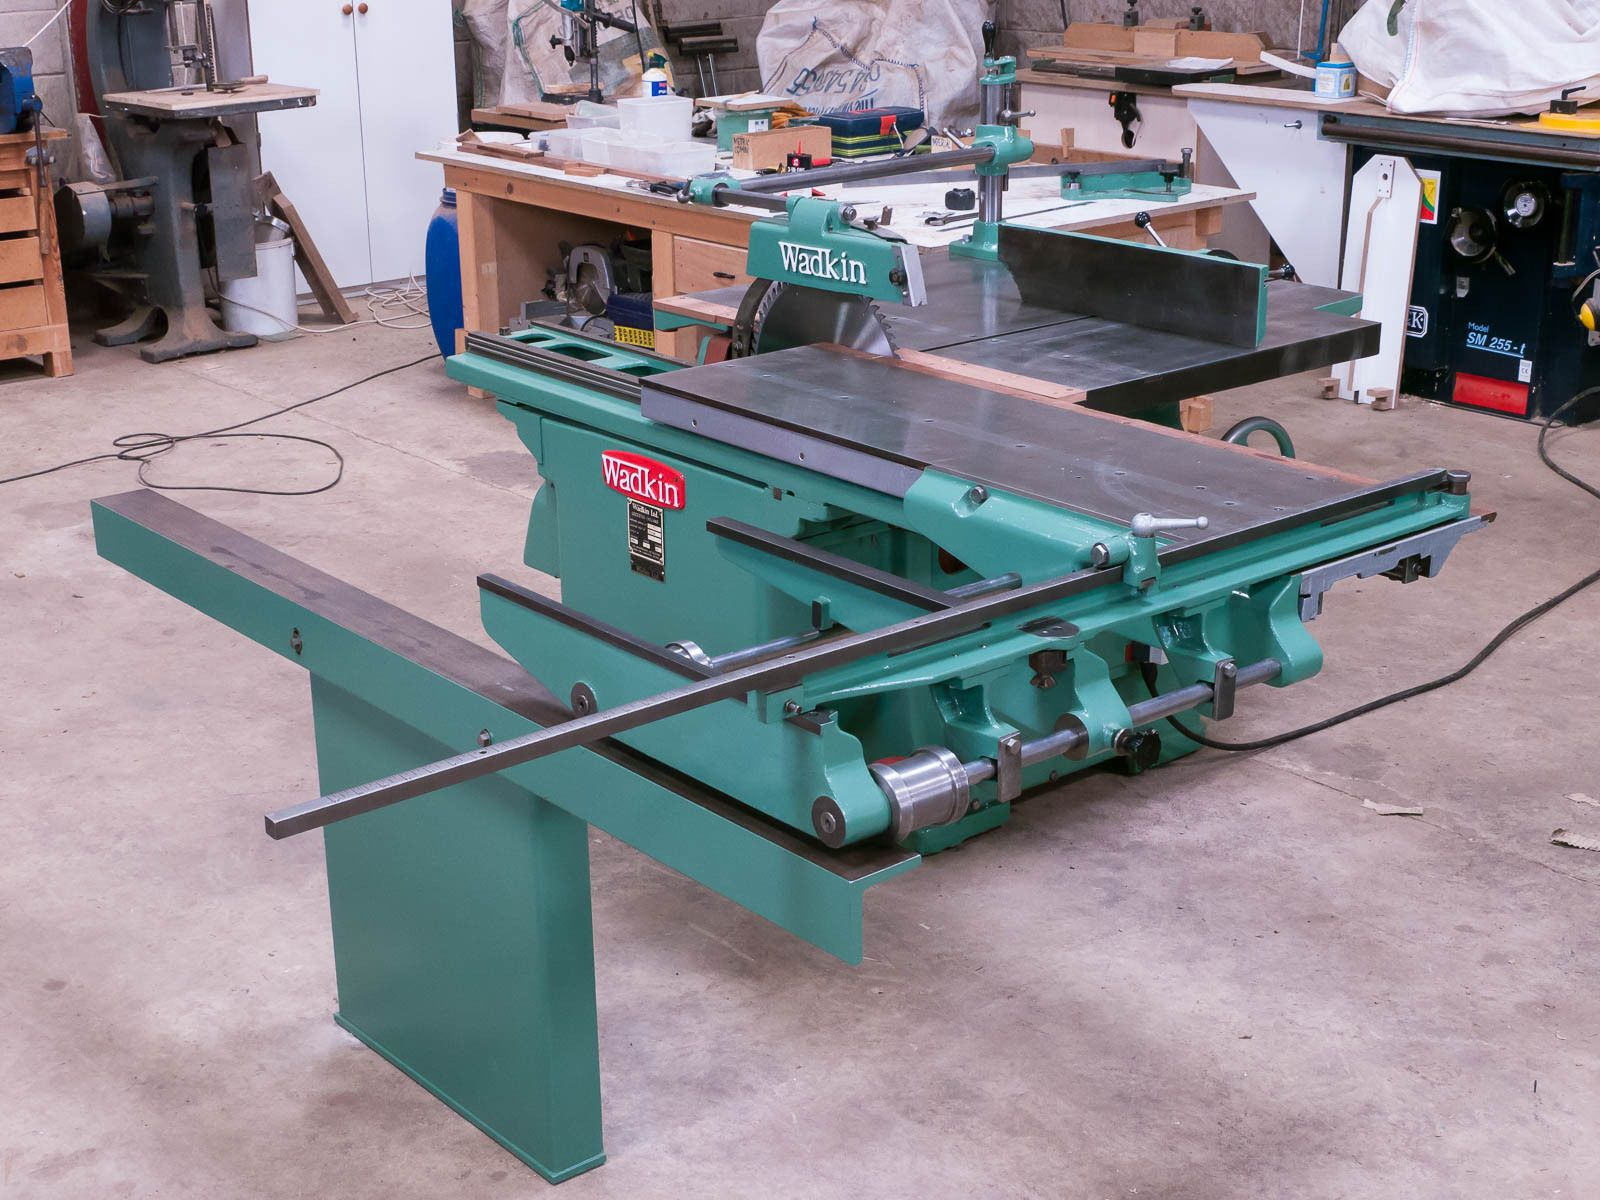 Wadkin Pp 450 18 Panel Dimension Rip Saw Bench 3 Phase In Business Office Industrial